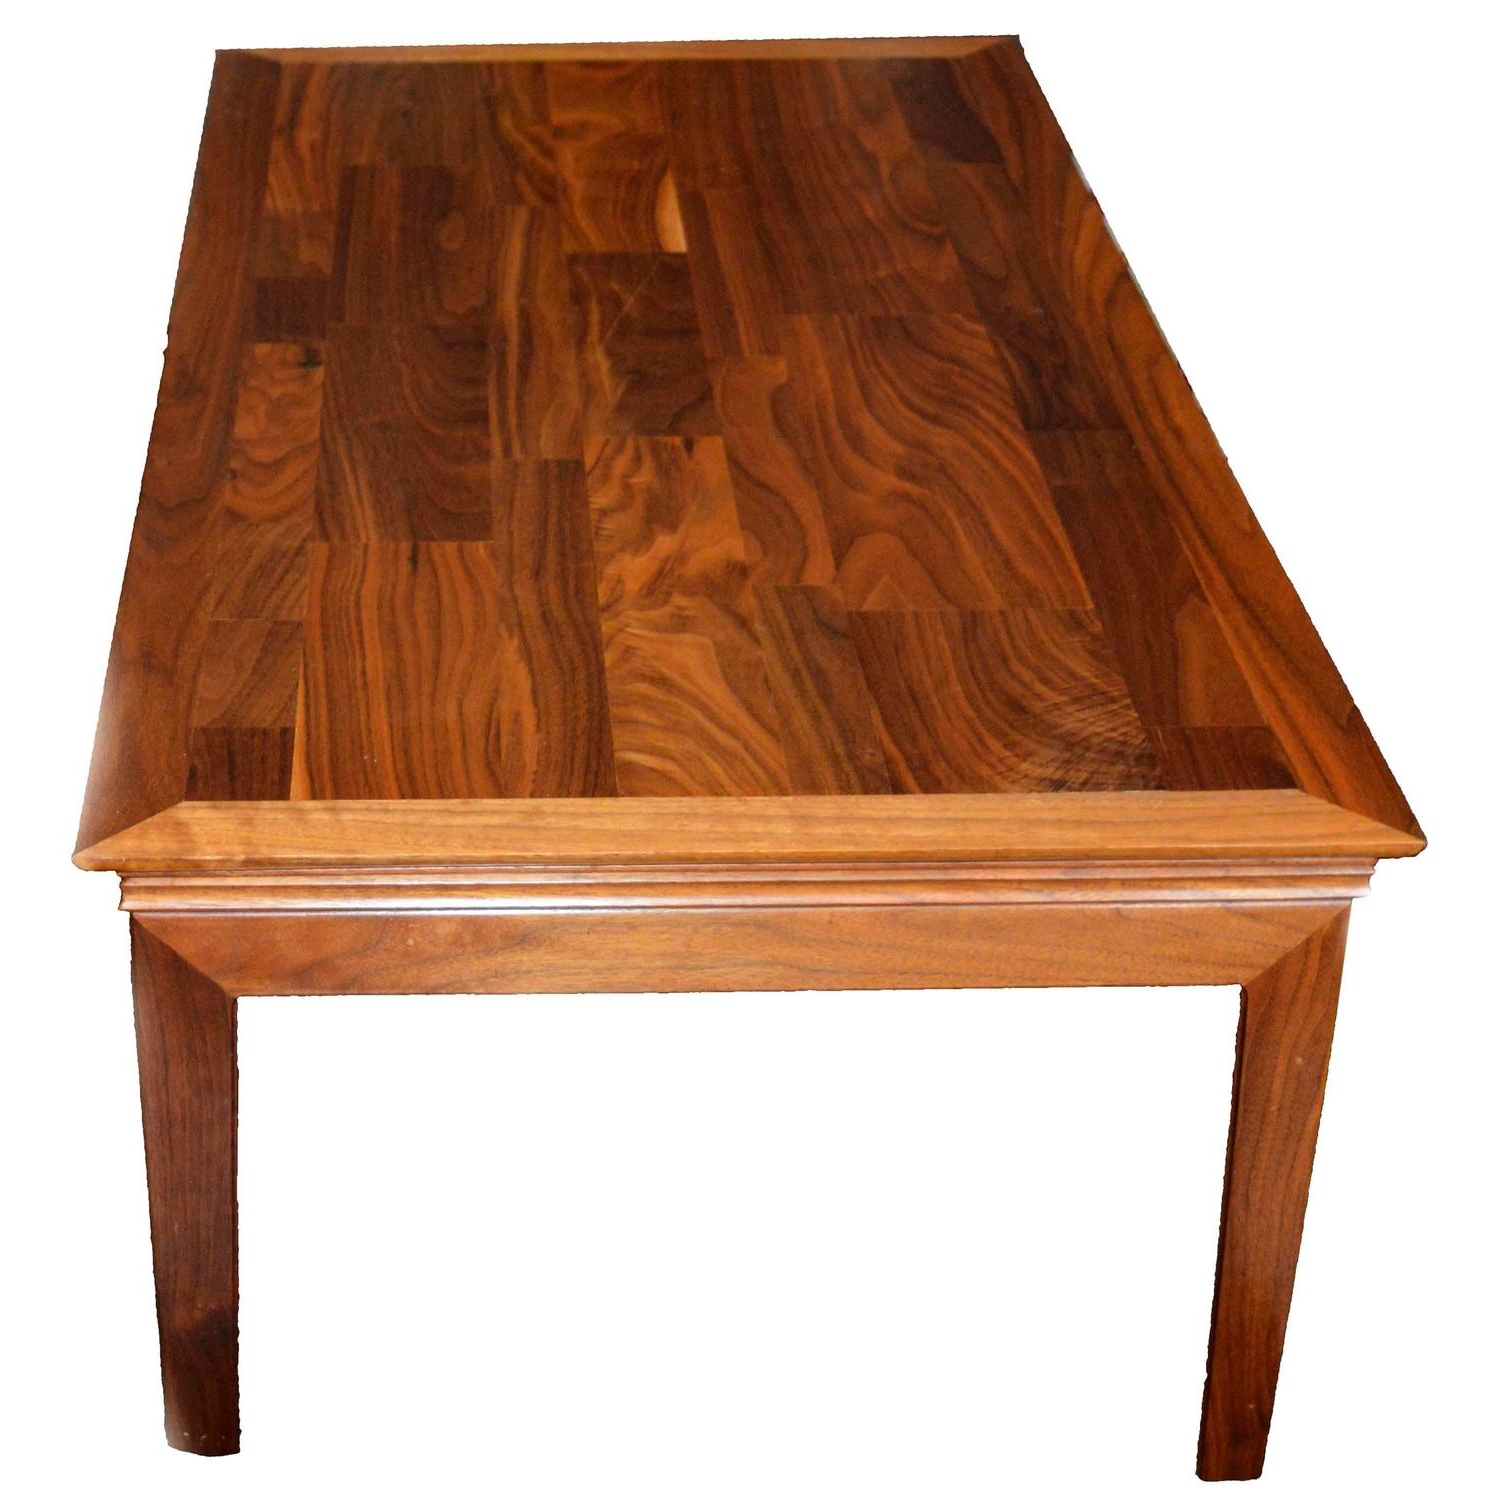 Hawiian Curly Koa Wood Coffee Table 1998 #5Paul Ayoob For Sale In Popular Craftsman Cocktail Tables (View 10 of 20)